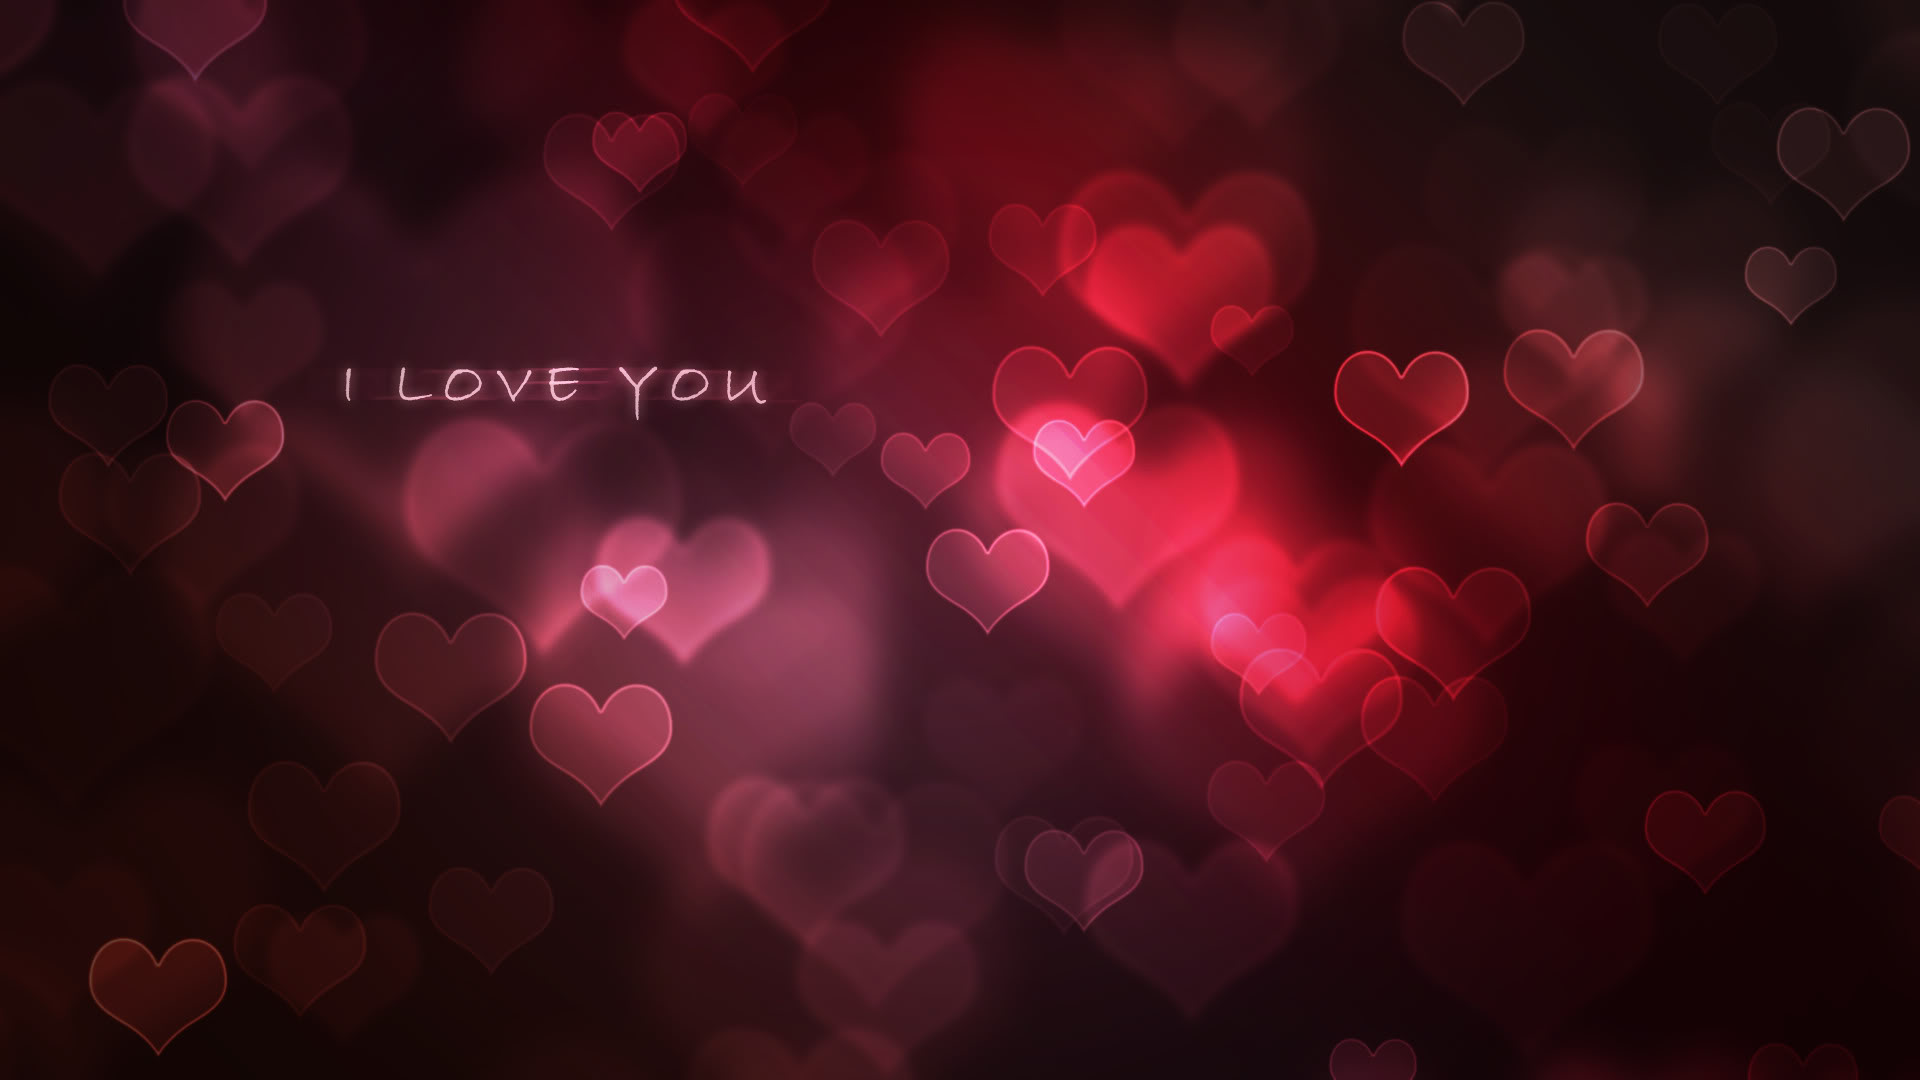 Awesome Love Backgrounds 18163 1920x1080 px ~ HDWallSource.com